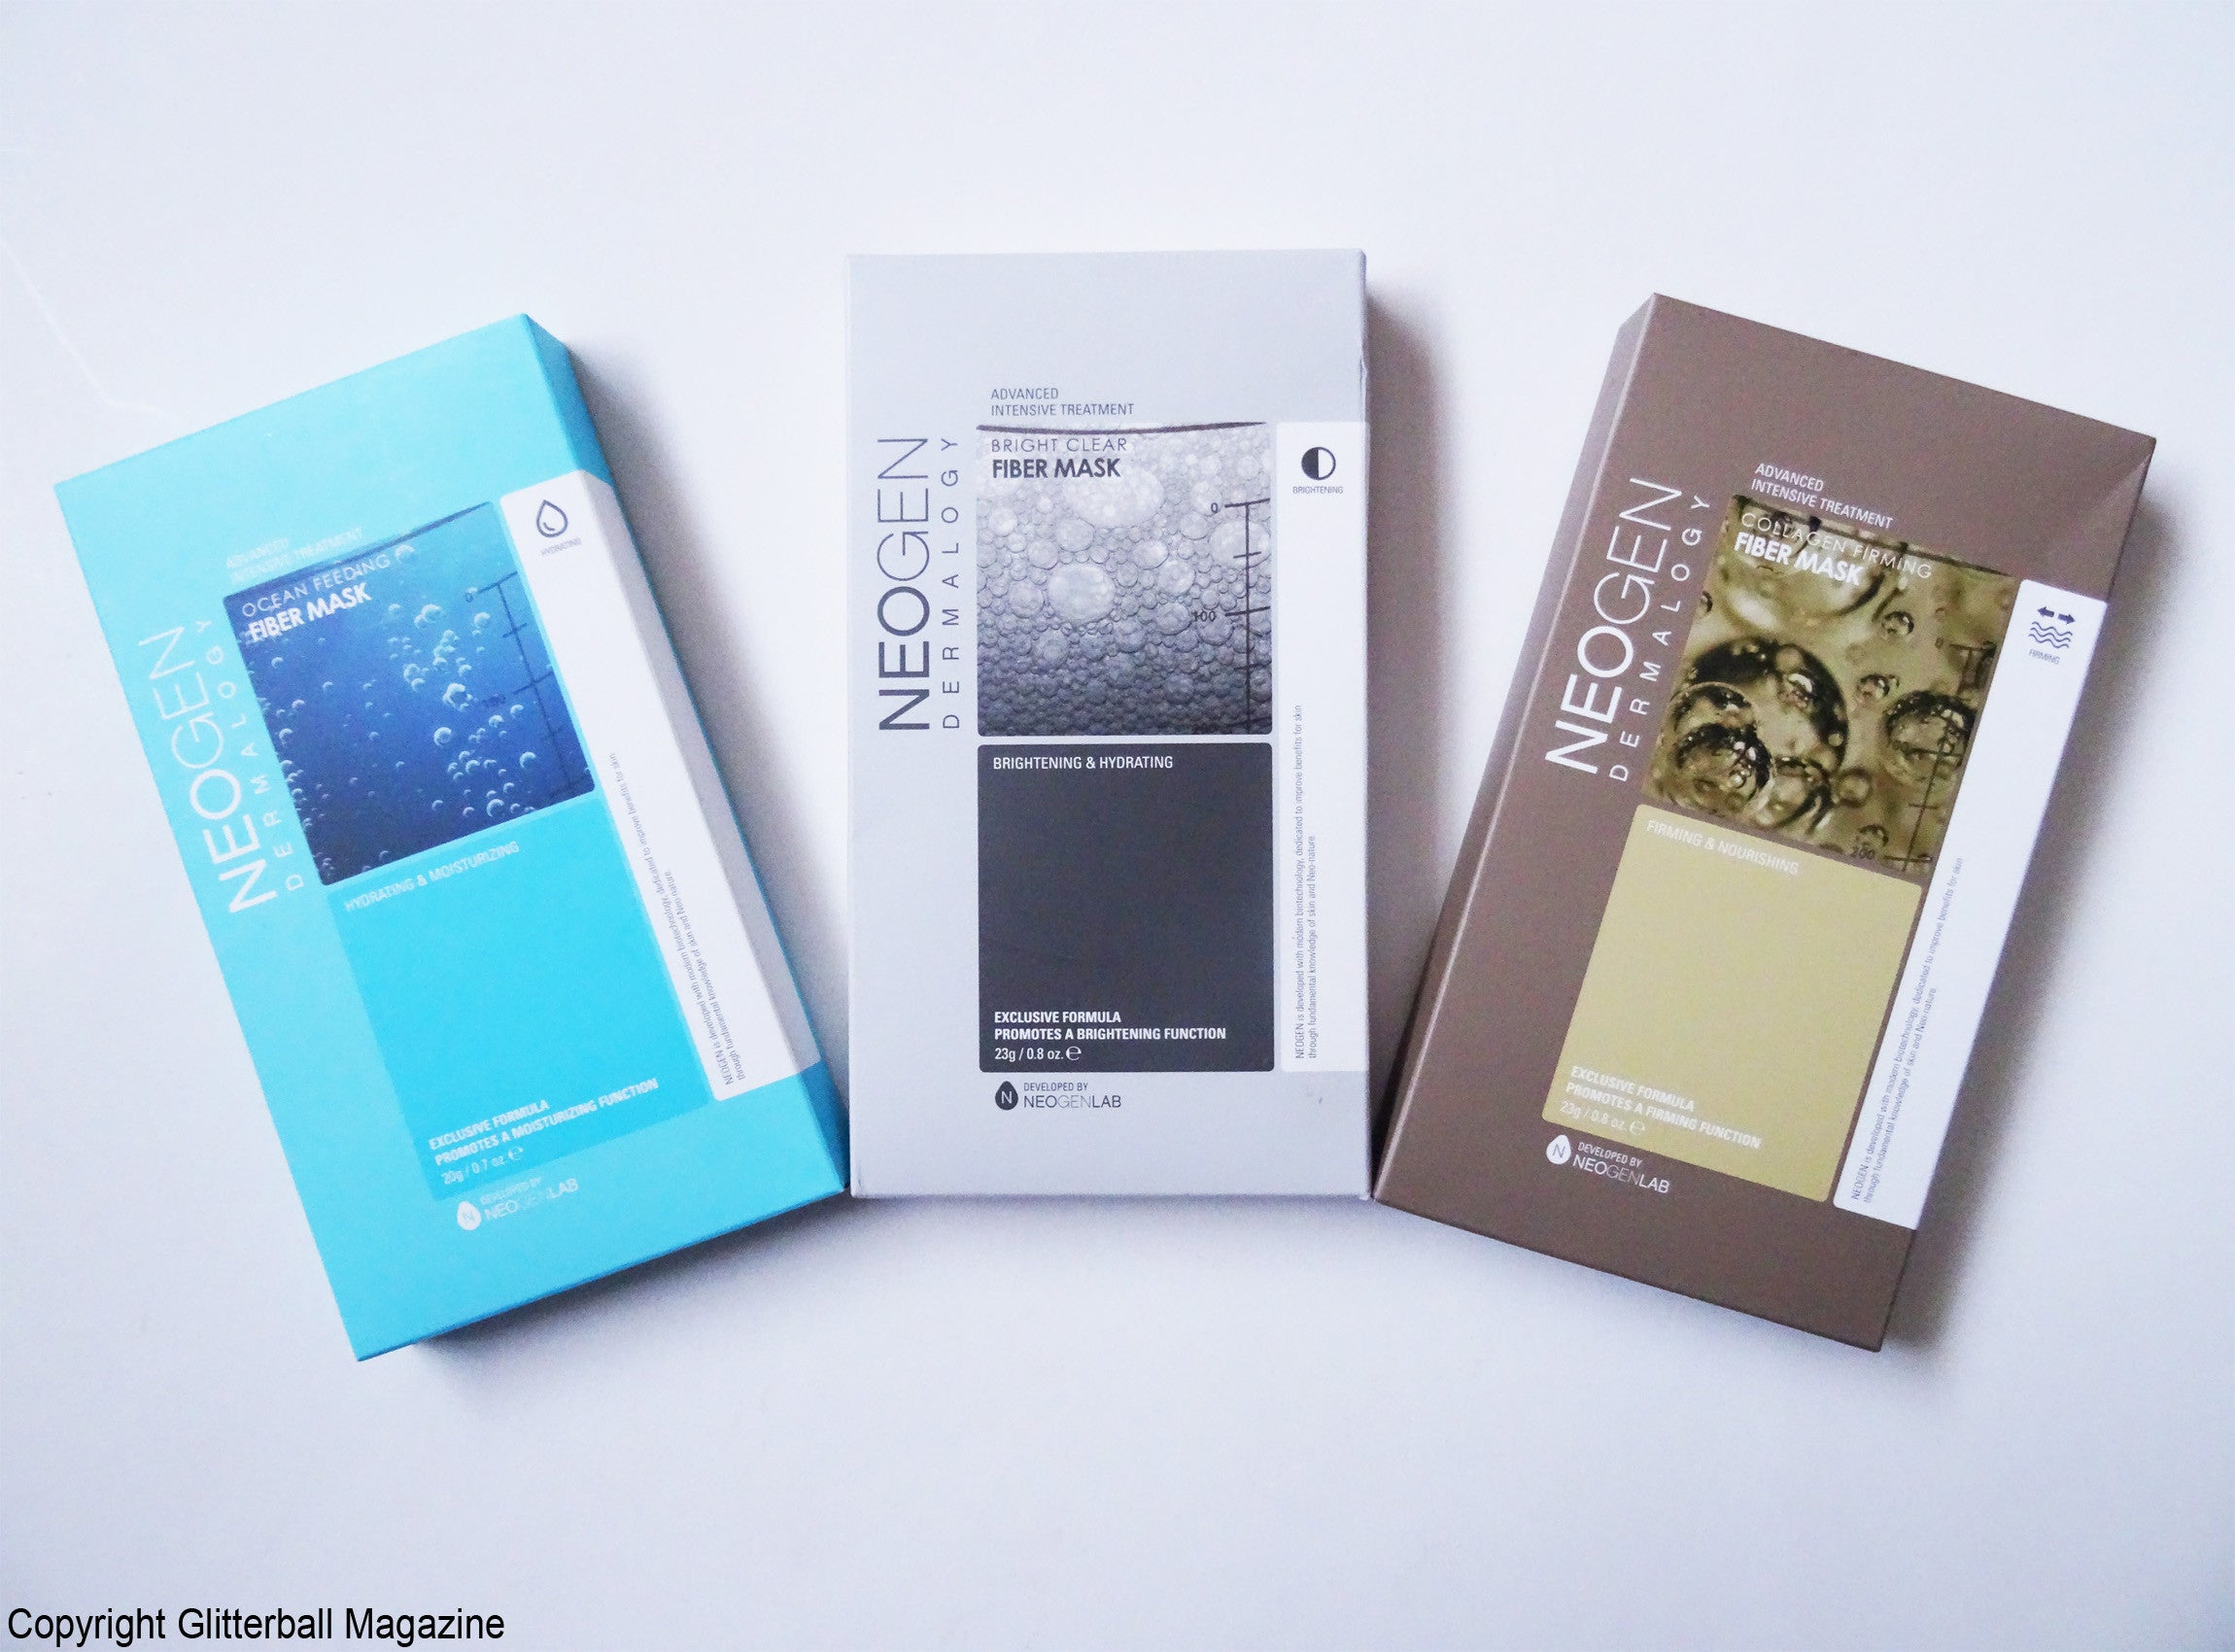 Neogen Sheet masks